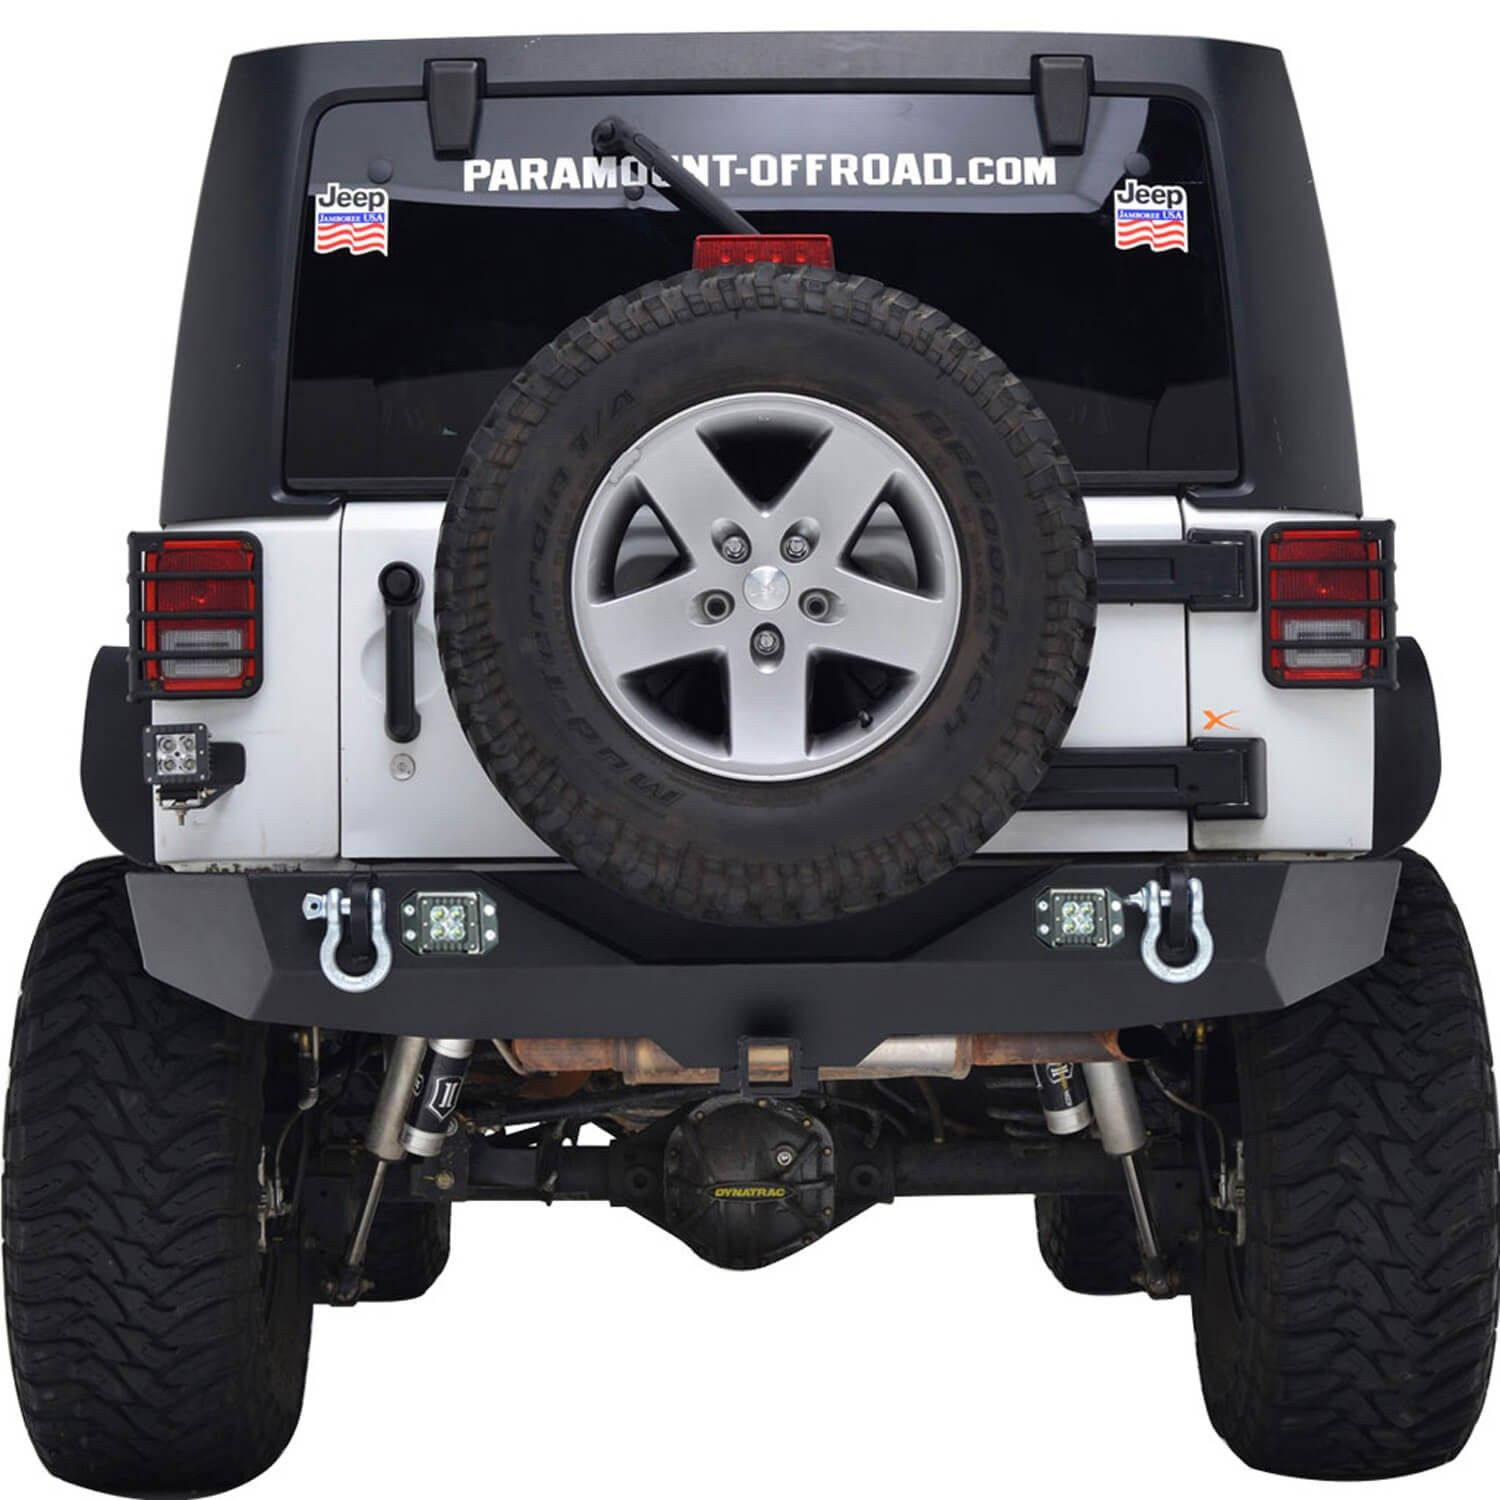 07 16 Jeep Wrangler Jk Heavy Duty Rock Crawler Rear Bumper W Led Sub